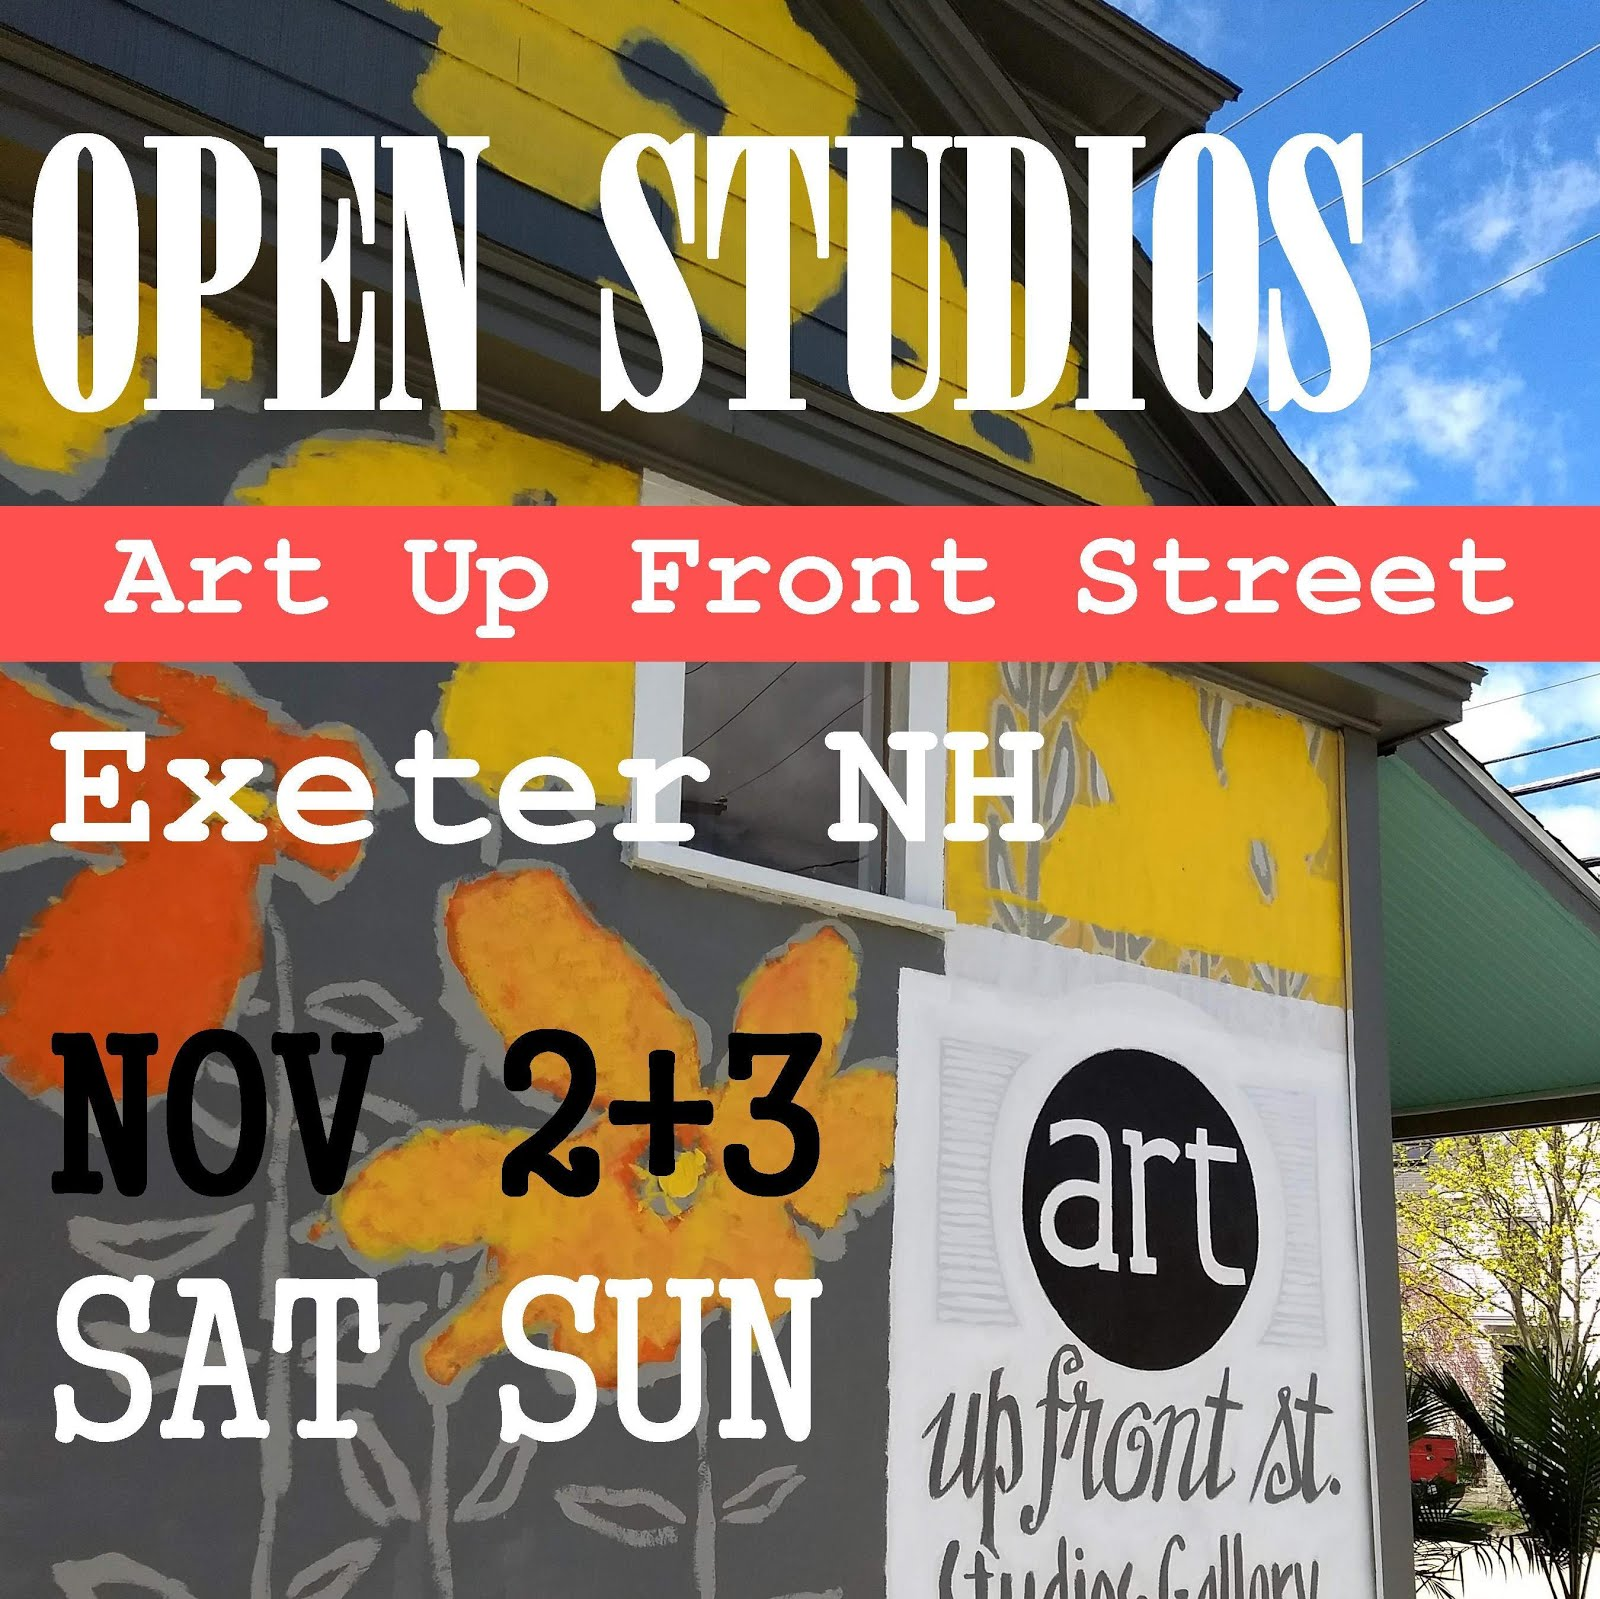 EVENT: OPEN STUDIOS NOV 2+3